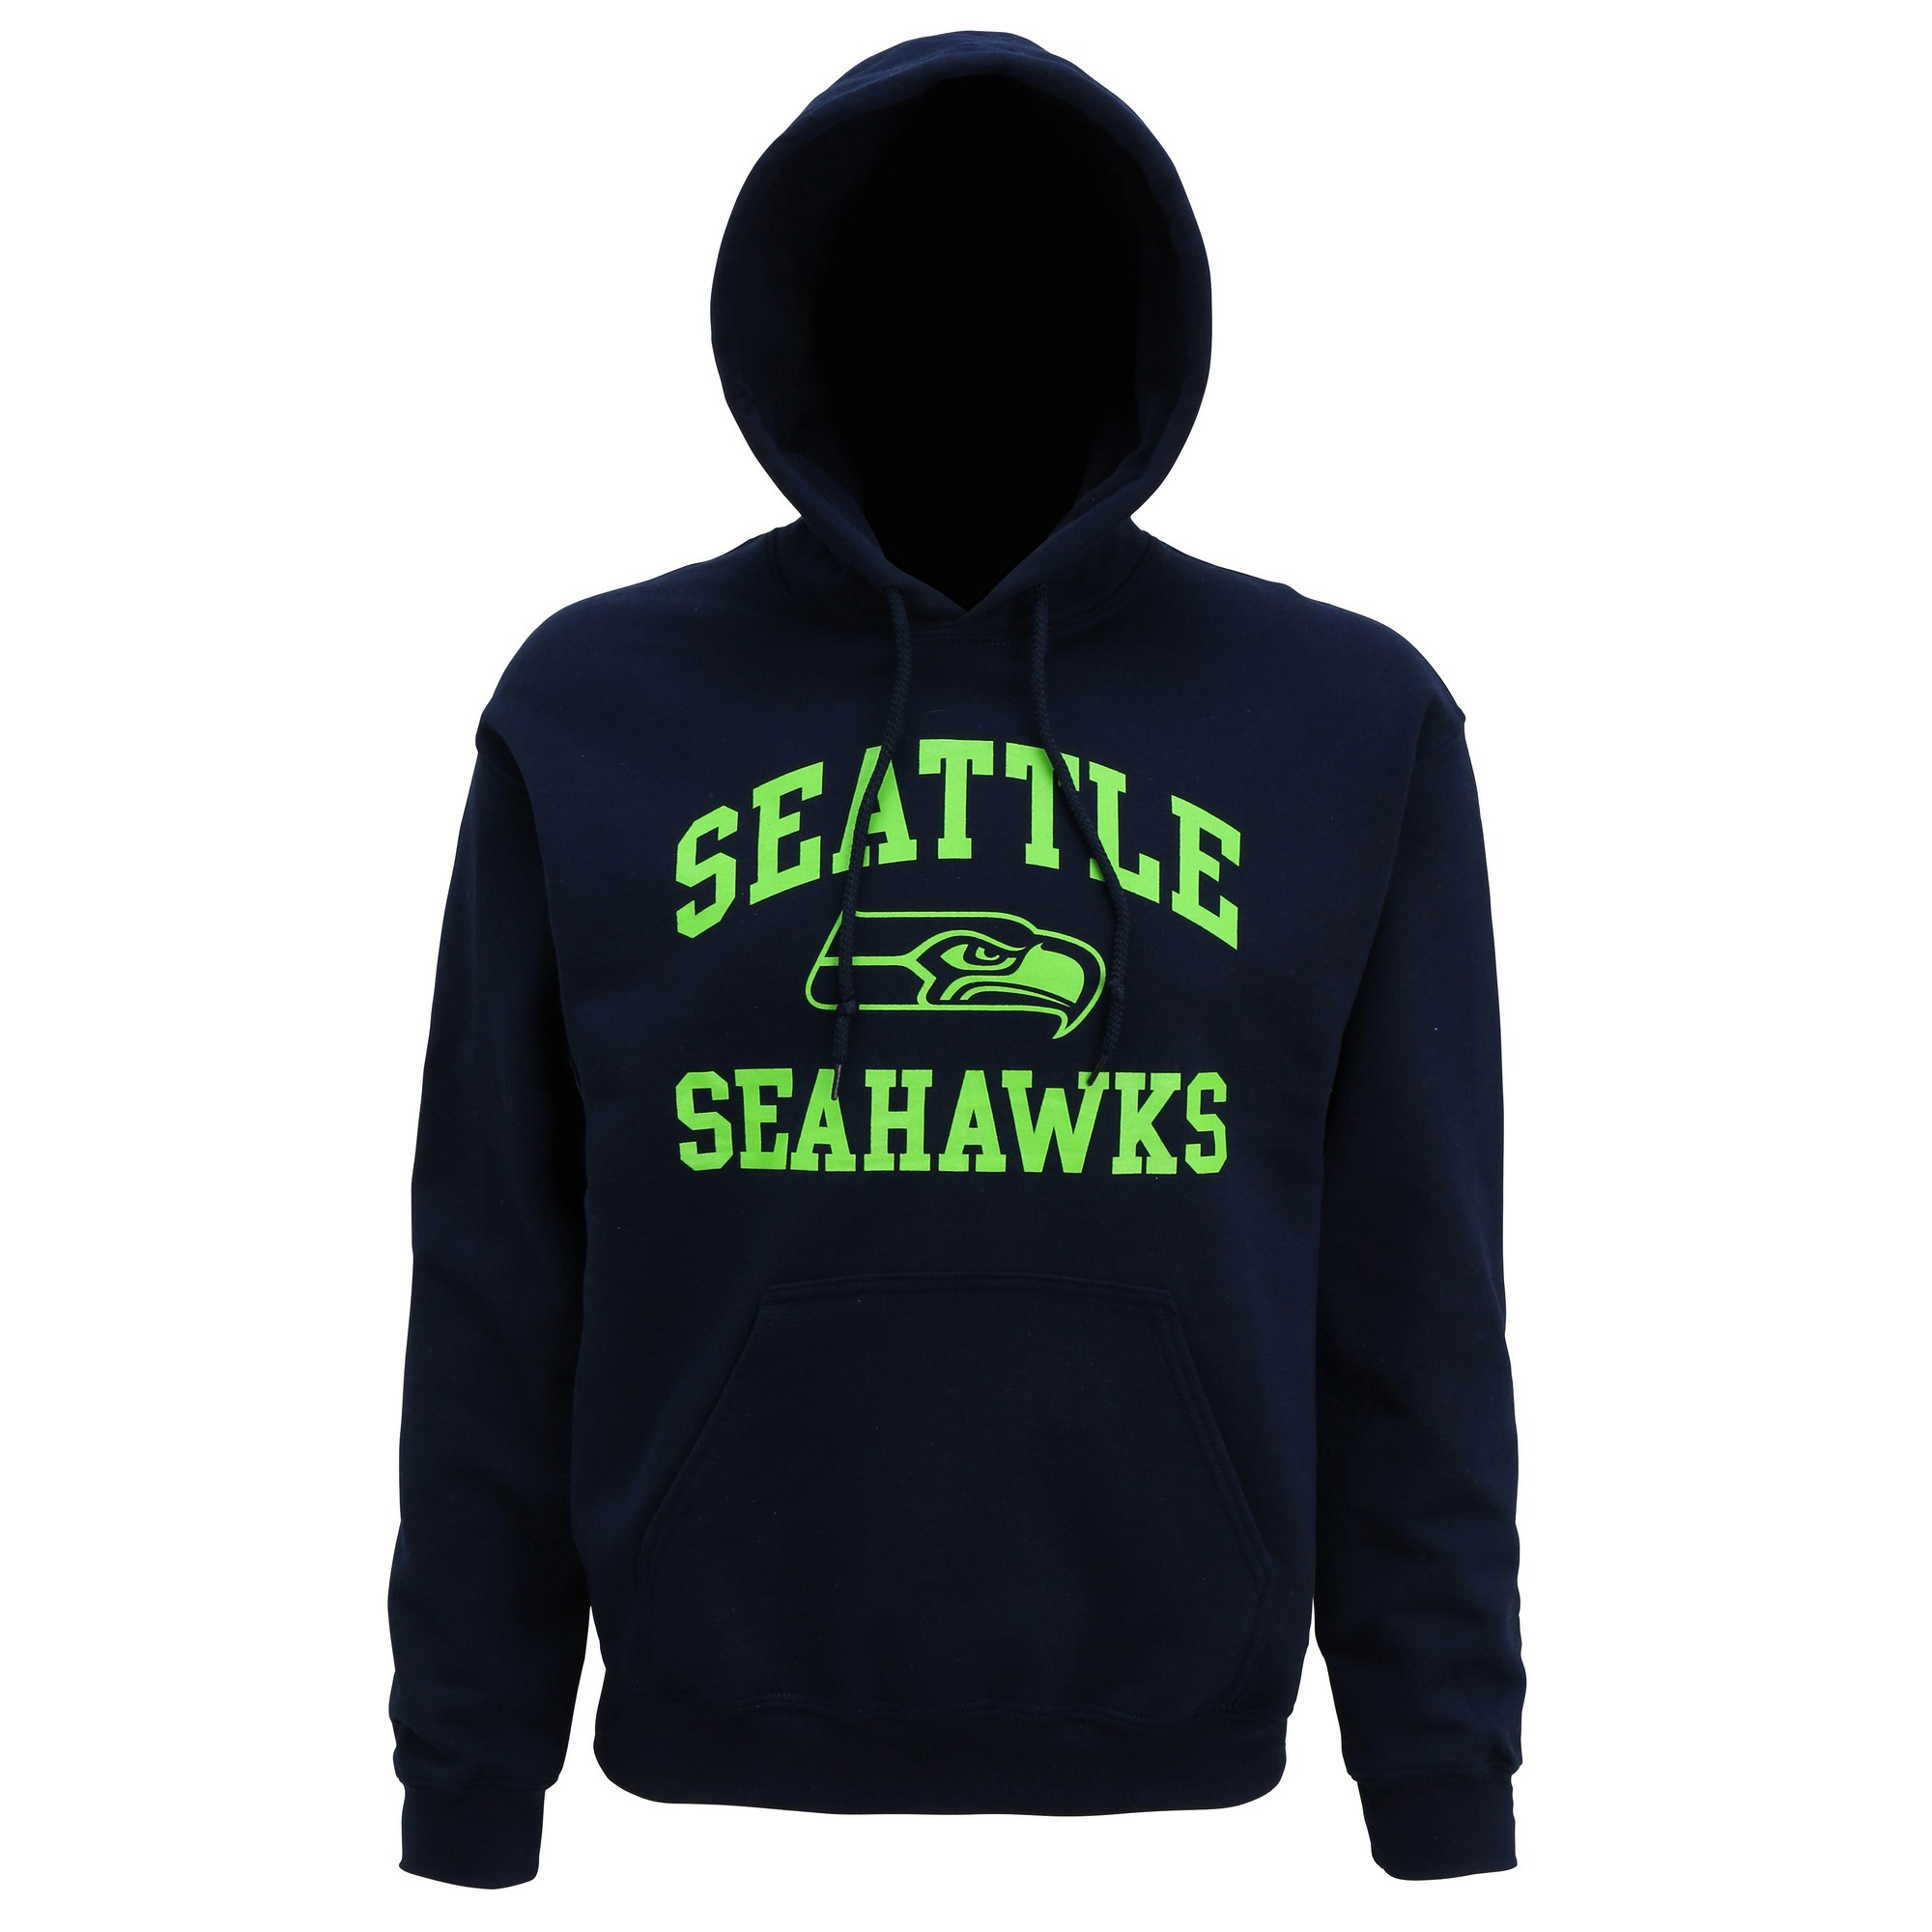 Official-American-Sports-Merchandise-Sudadera-con-capucha-Seattle-Seahawks-Mo